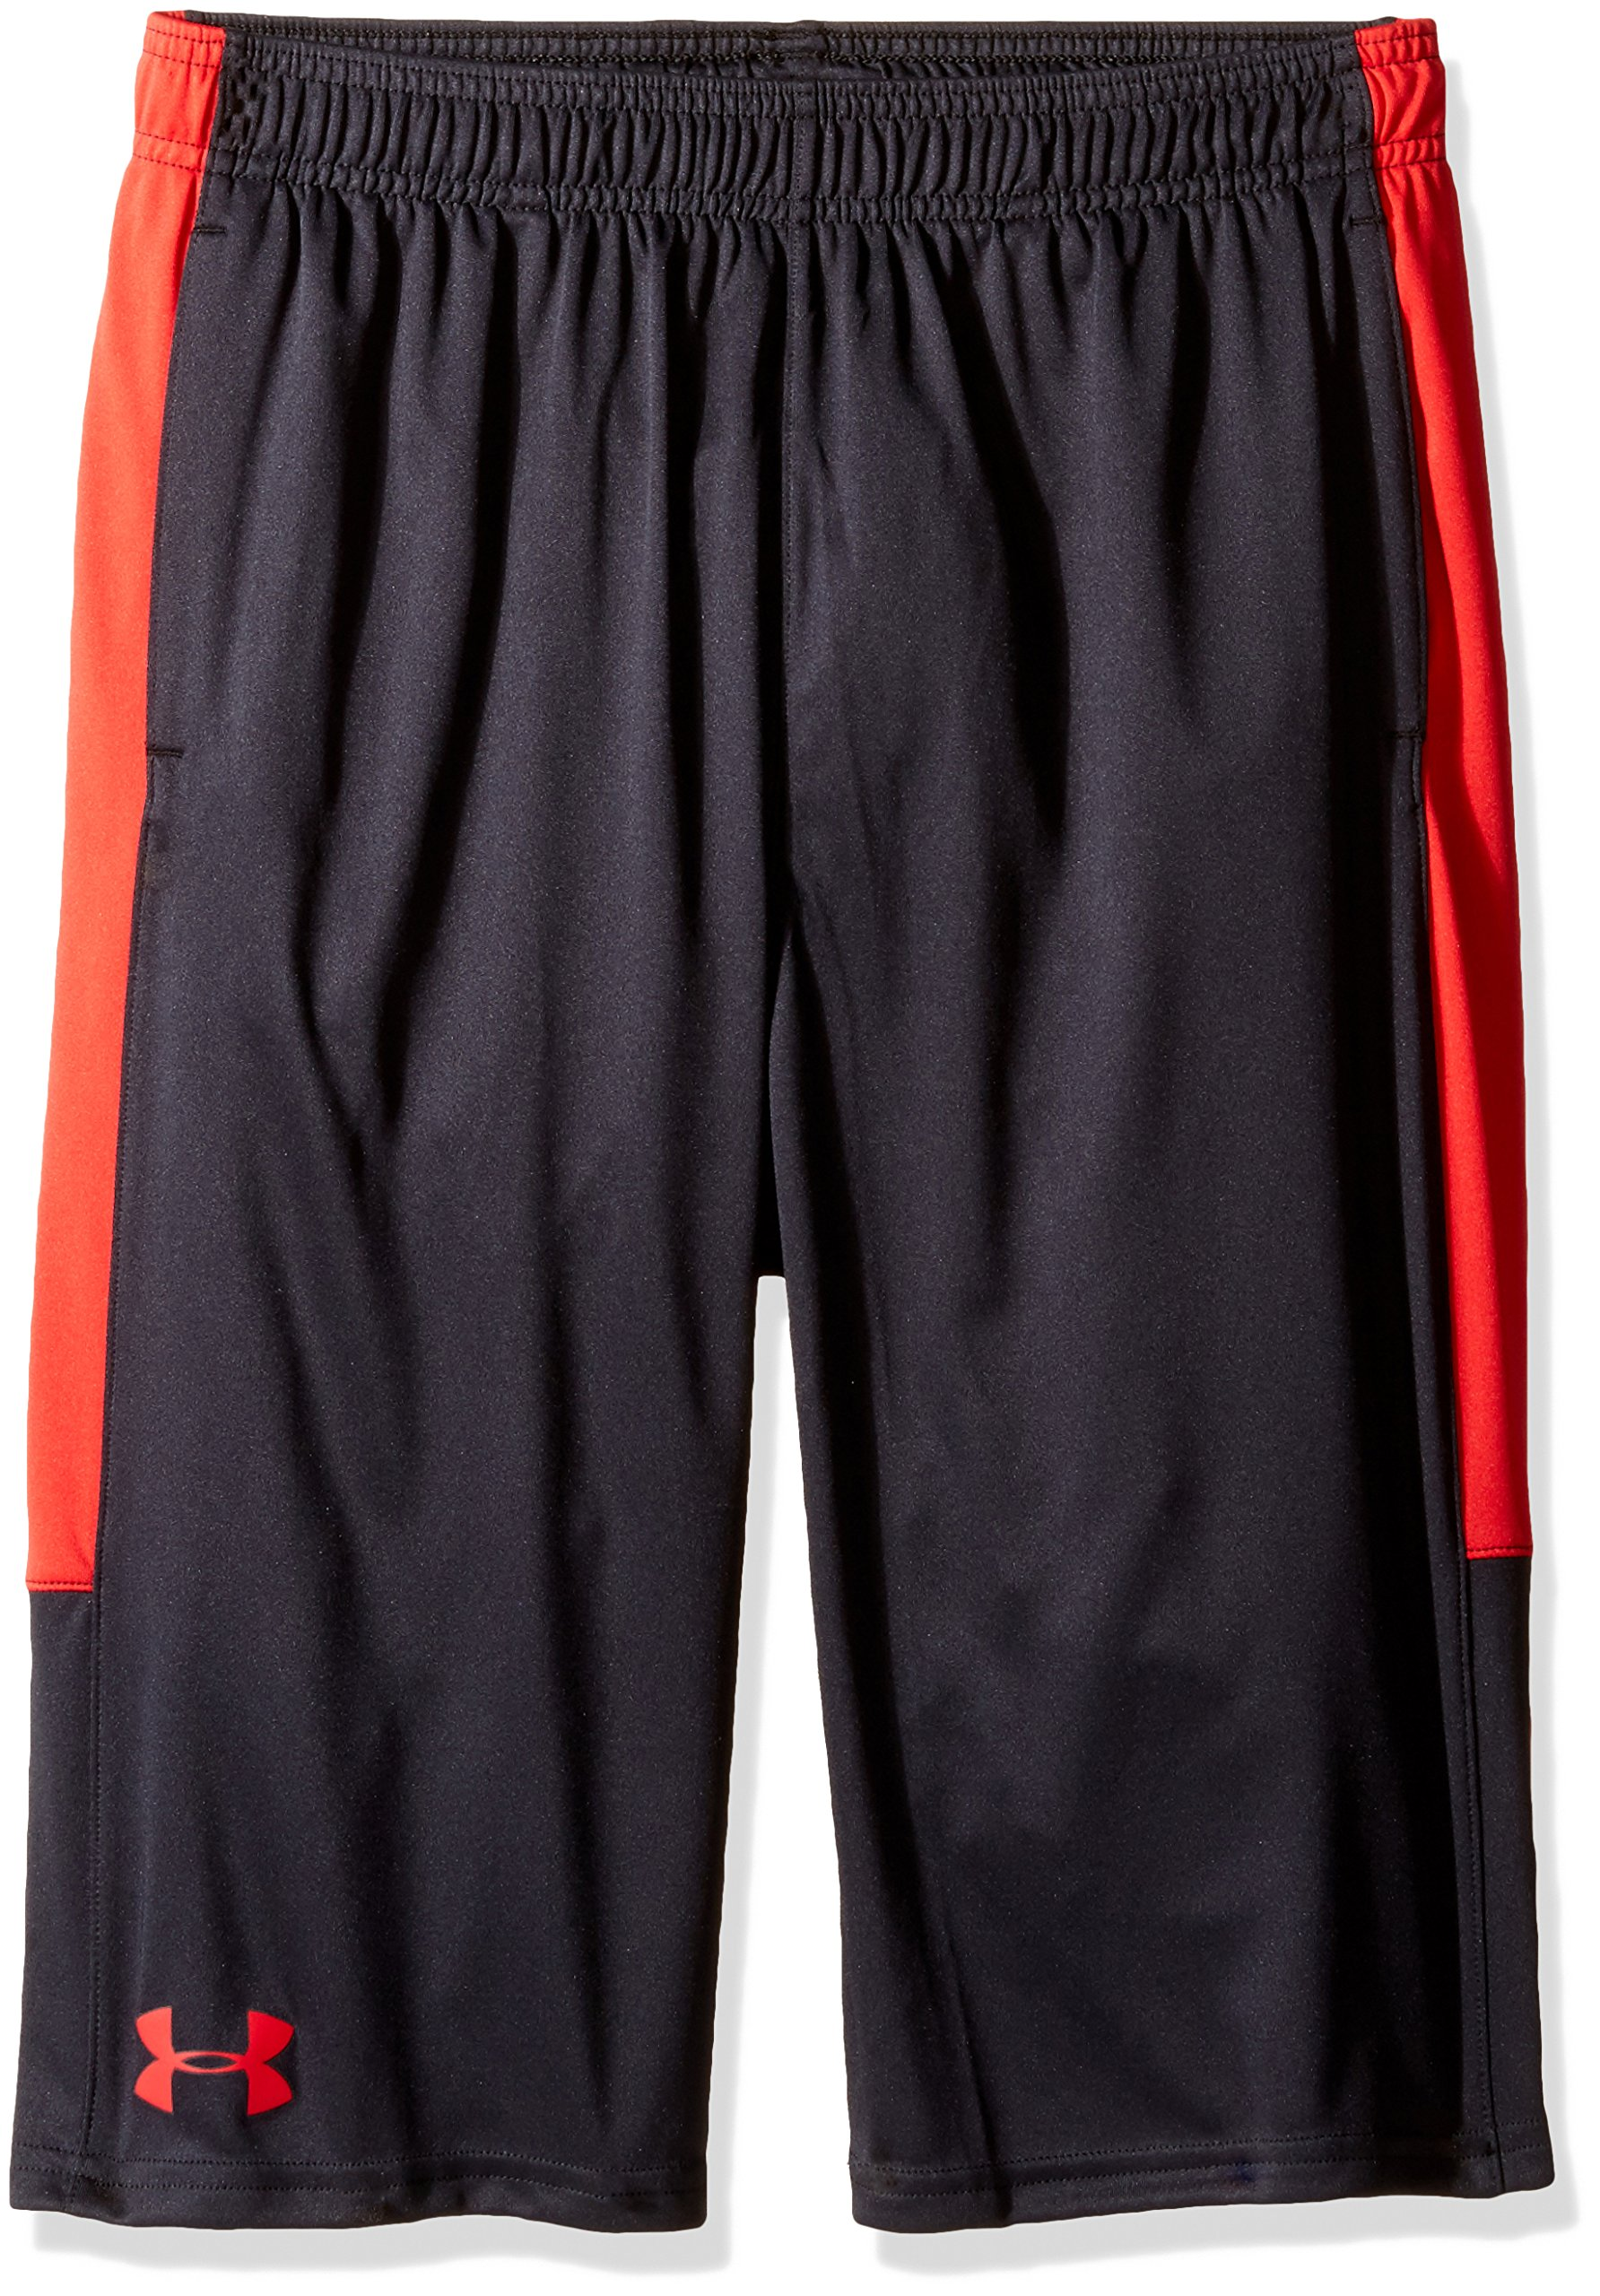 Under Armour Boys Instinct Shorts,Black /Red Youth Large by Under Armour